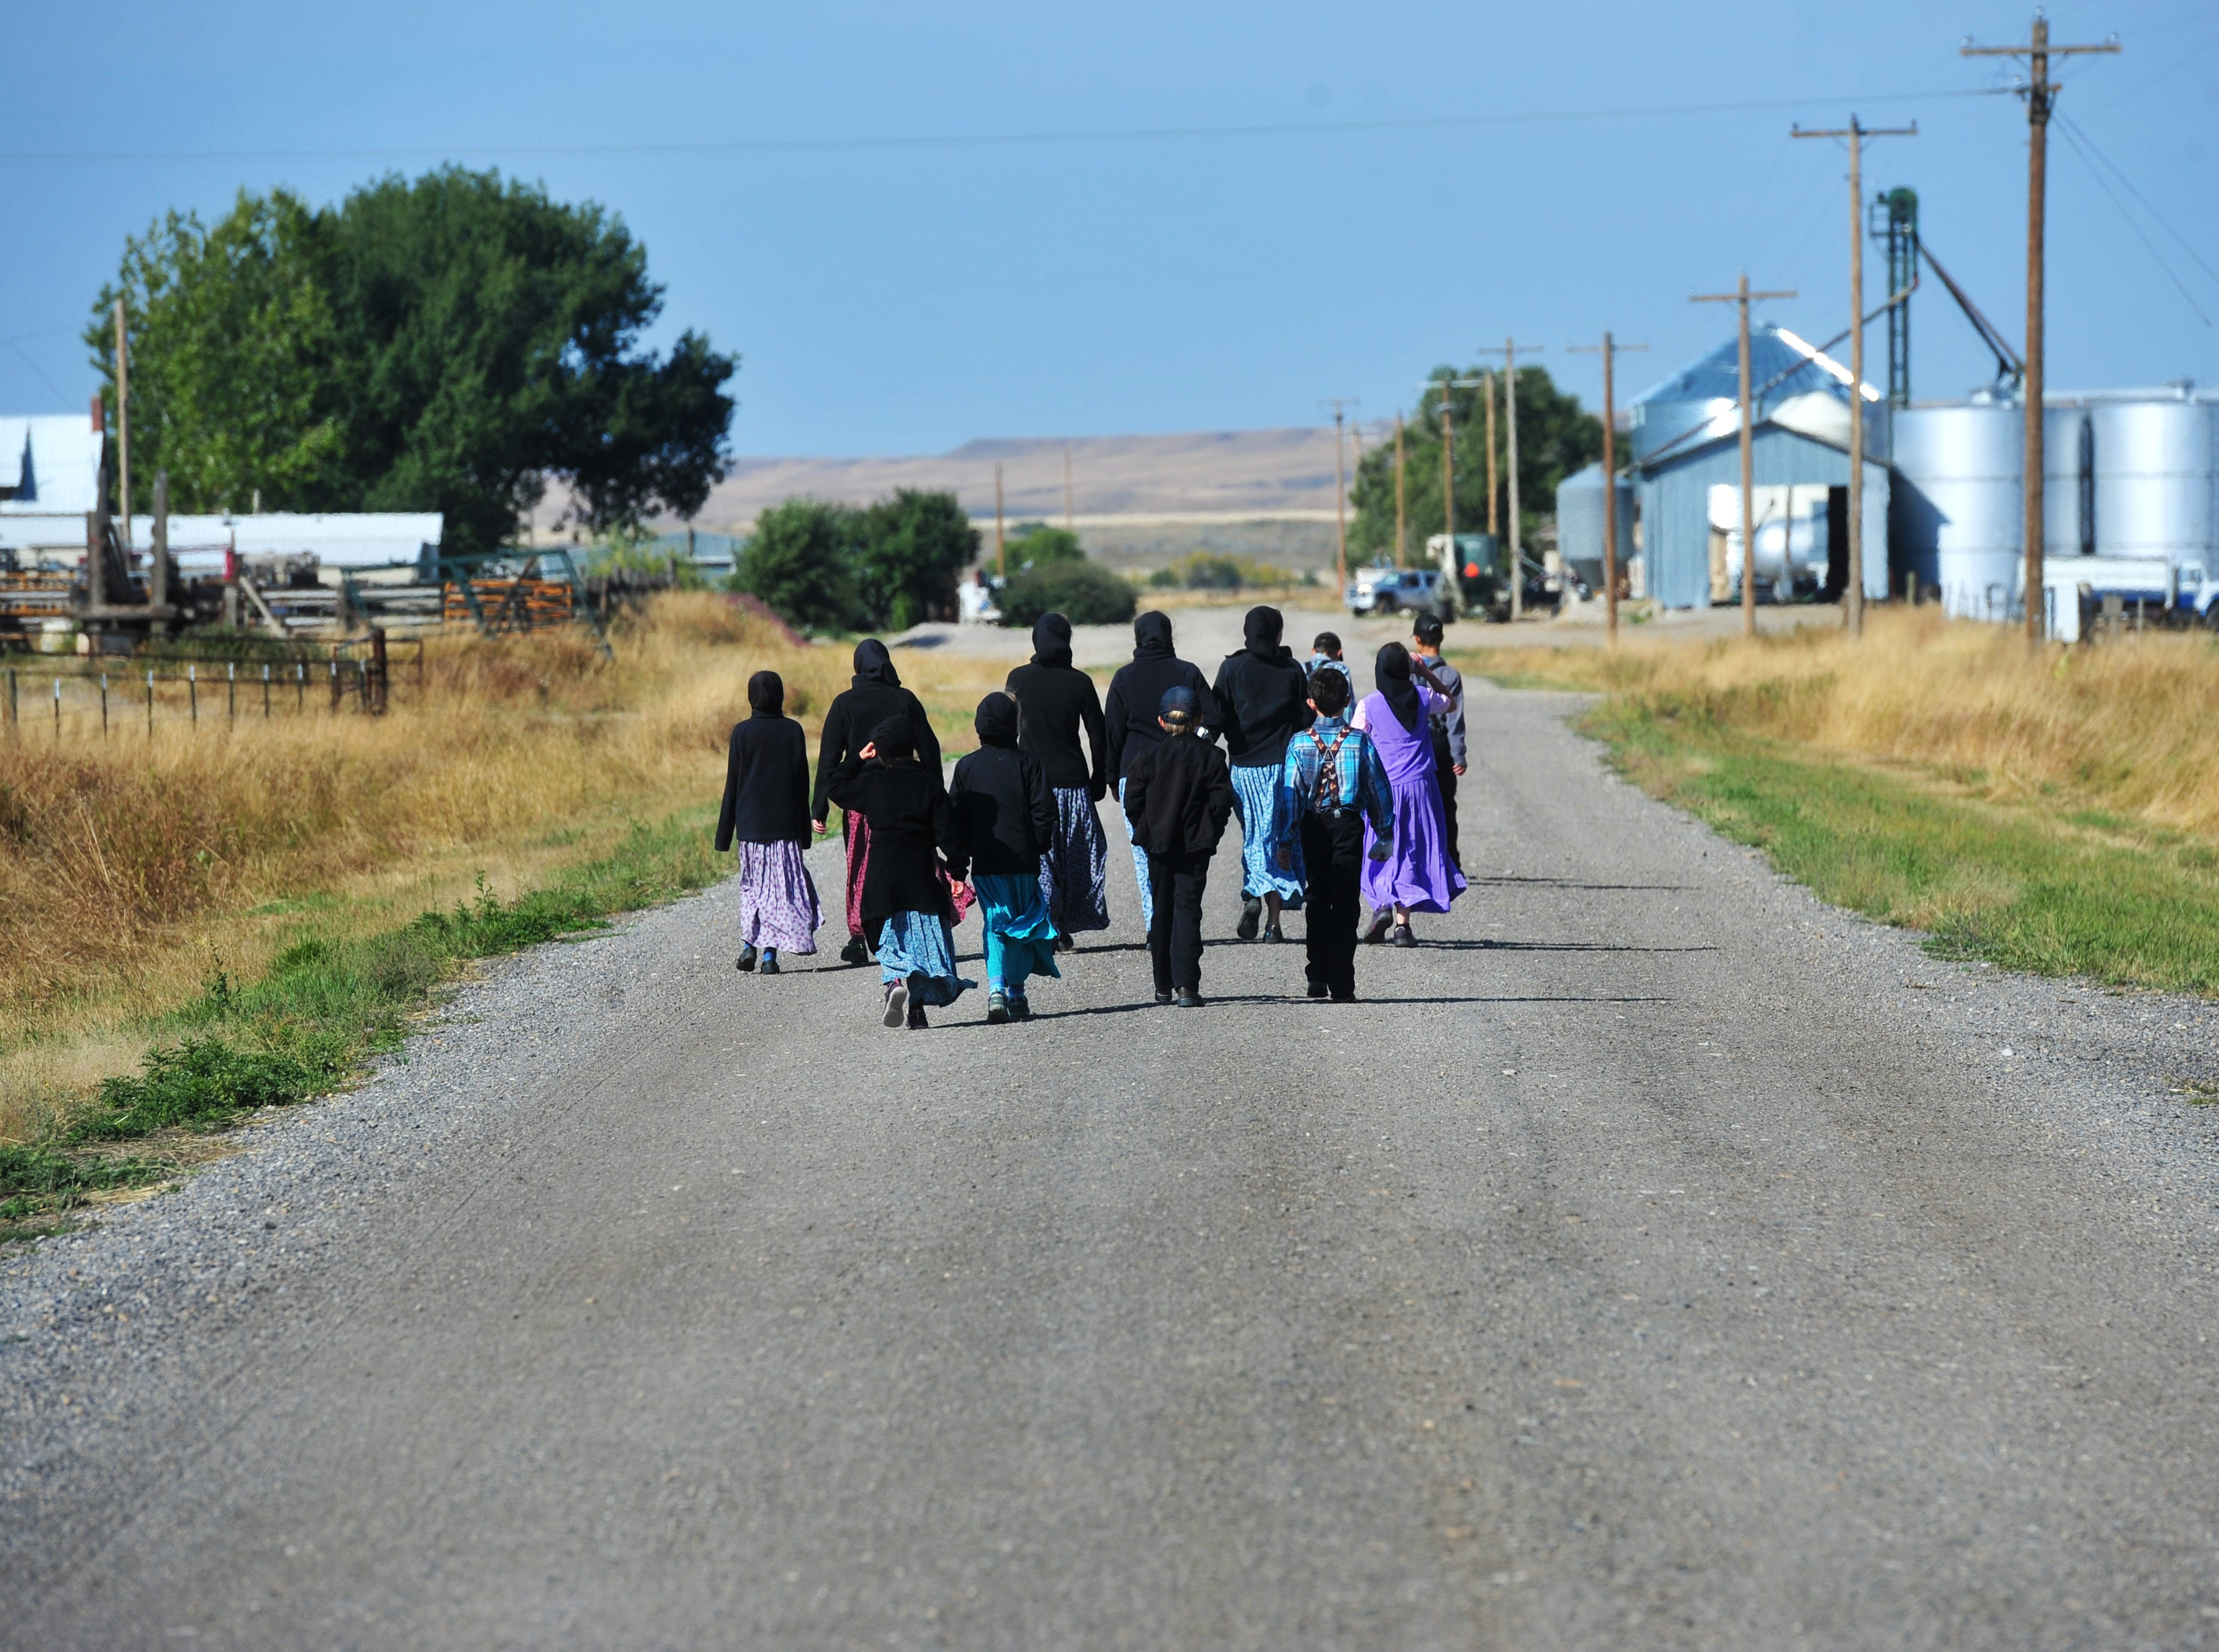 10:53 am: Traci Manseau's students walk home for lunch, Monday, Sept. 17, 2018.  Monseau is a teaching veteran of 23 years and she has spent her entire career teaching in one room rural school houses.  She is currently teaching 15 students across seven different grade levels at the Deerfield Hutterite Colony in North Central Montana's Fergus County.